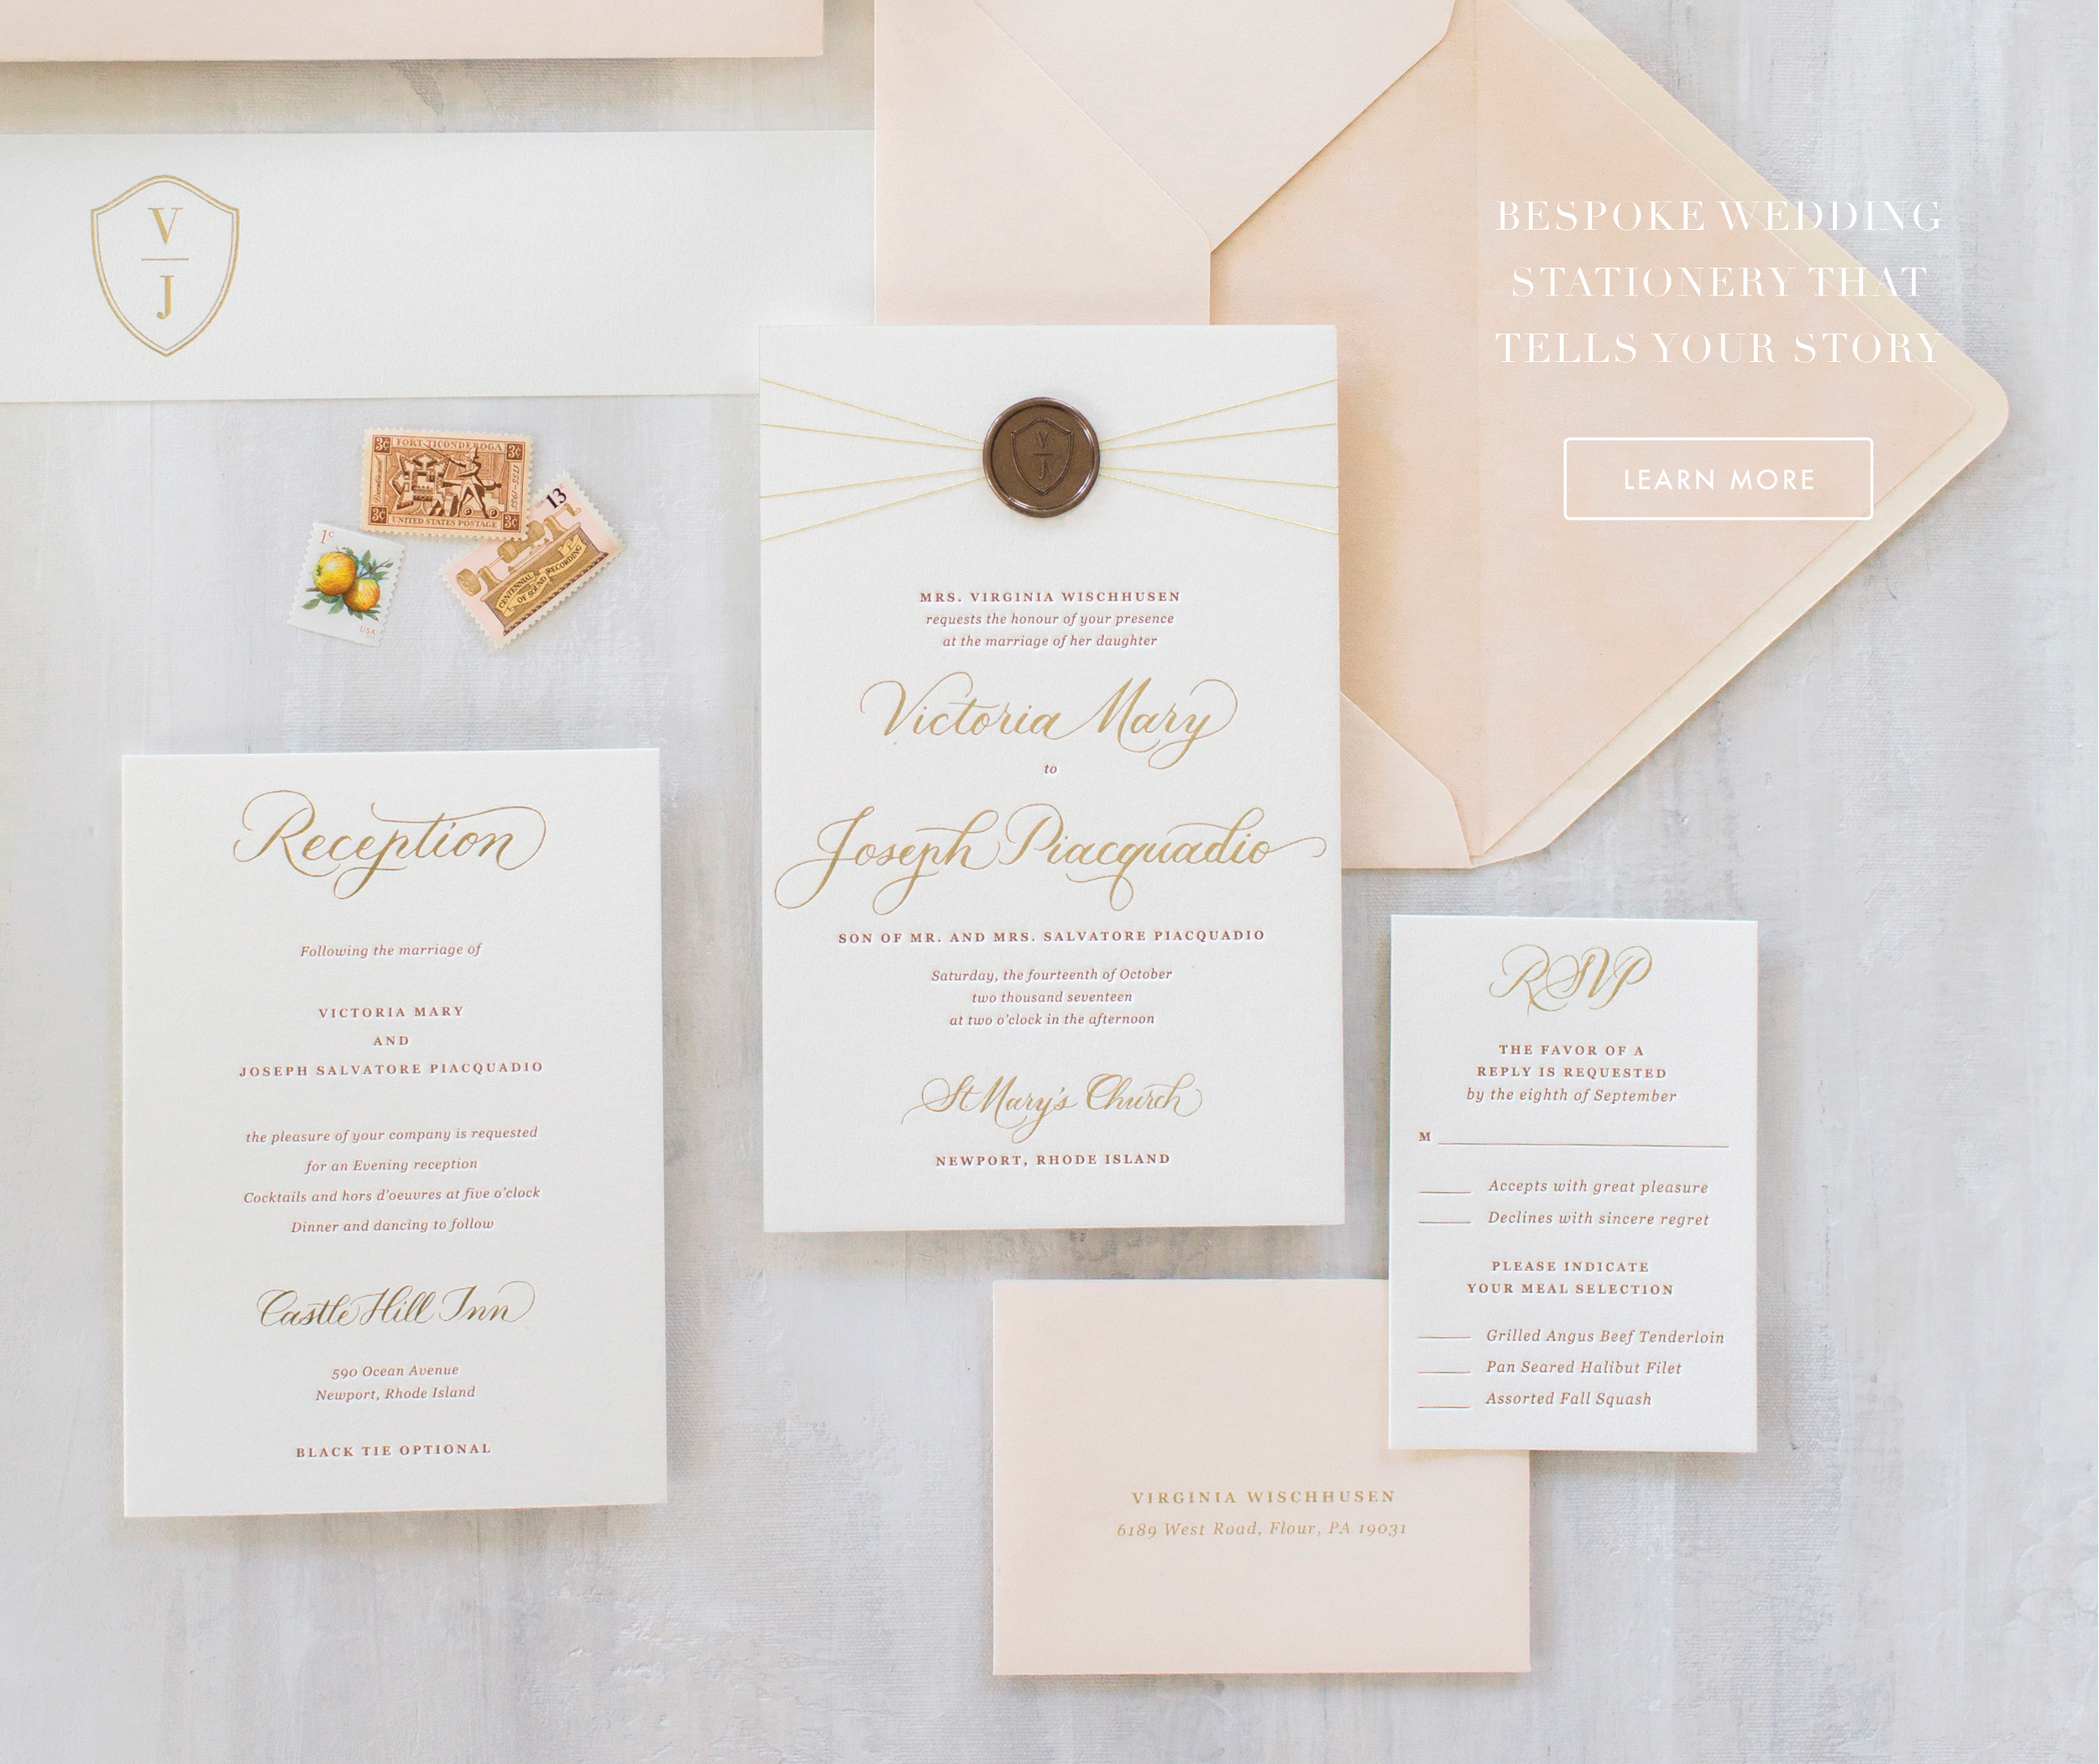 Letterpress-goldfoil-wedding-invitation-champagne-and-ink-molly-lo-photography-newport-ri-wedding.png